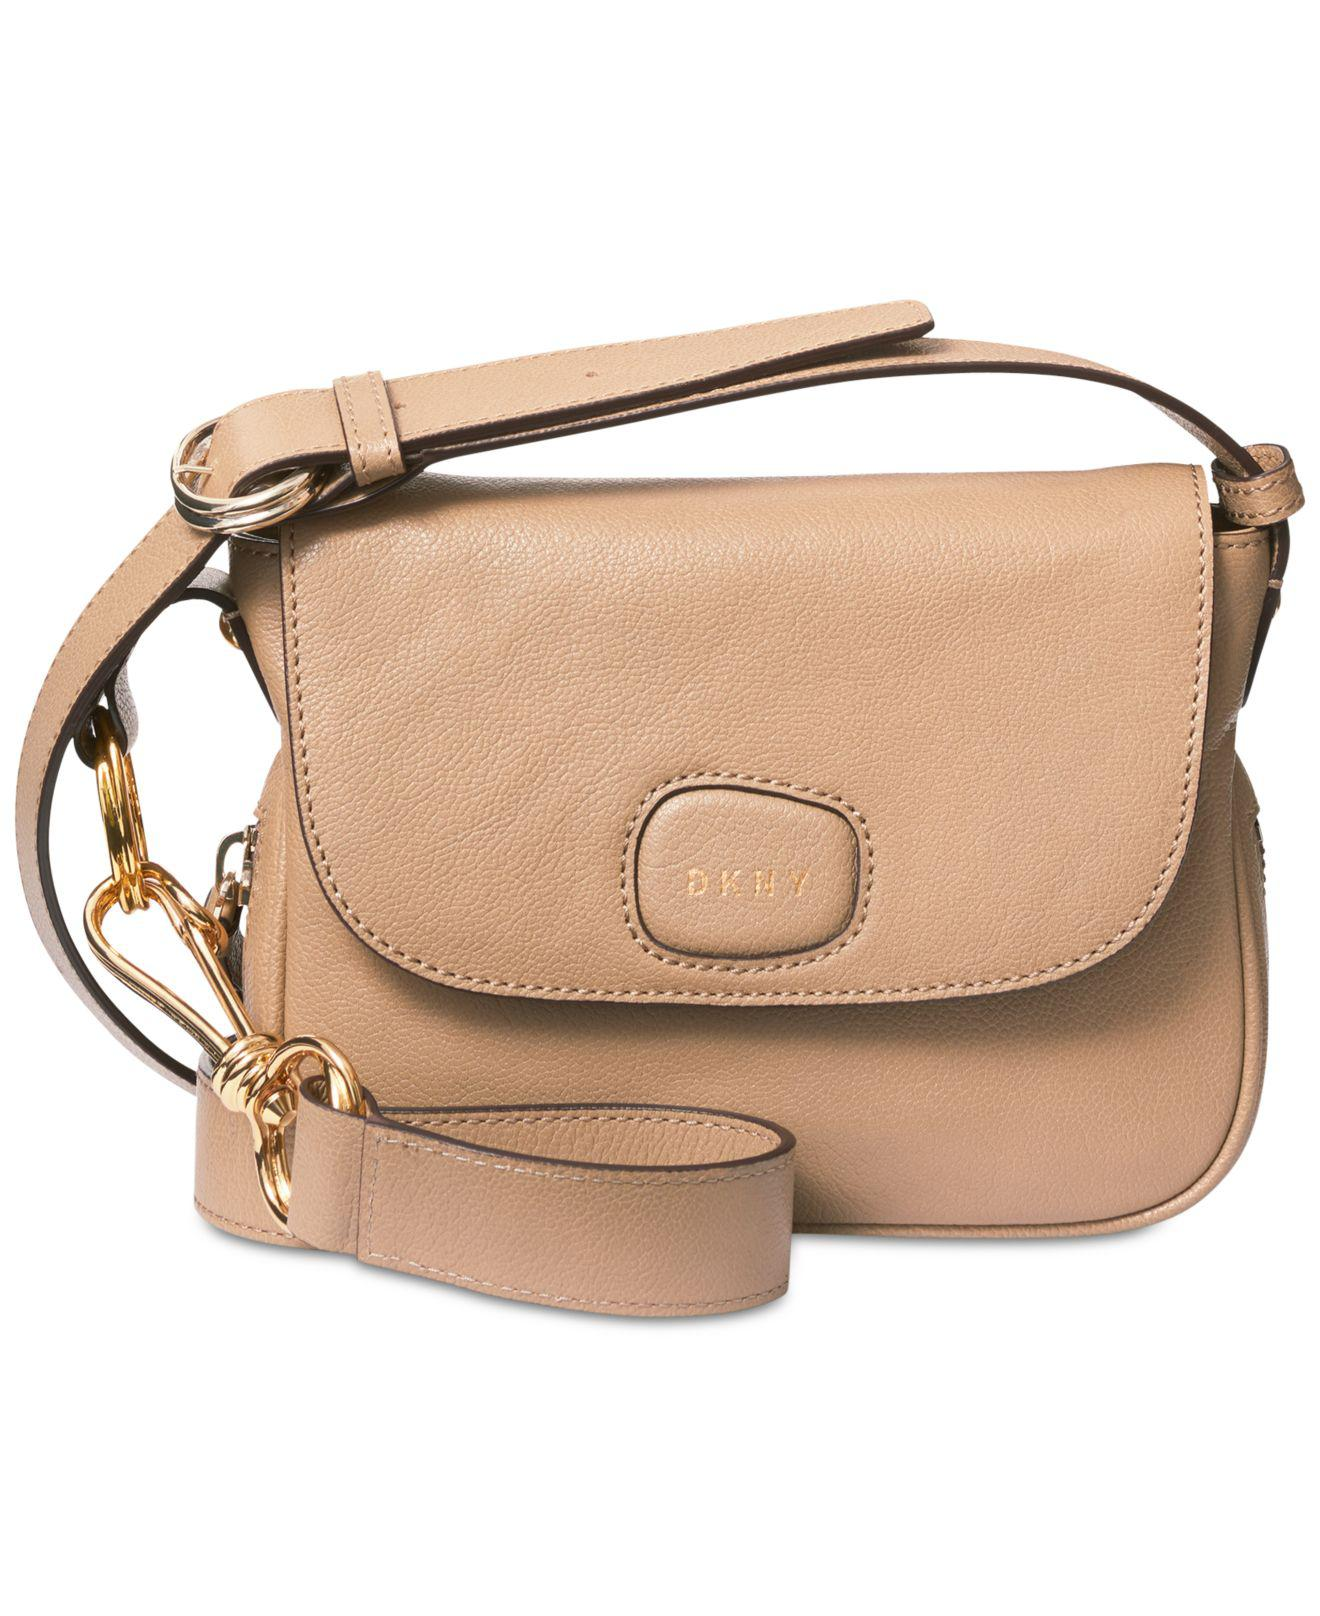 Lyst - DKNY Randall Small Flap Crossbody 8f12ef4886372